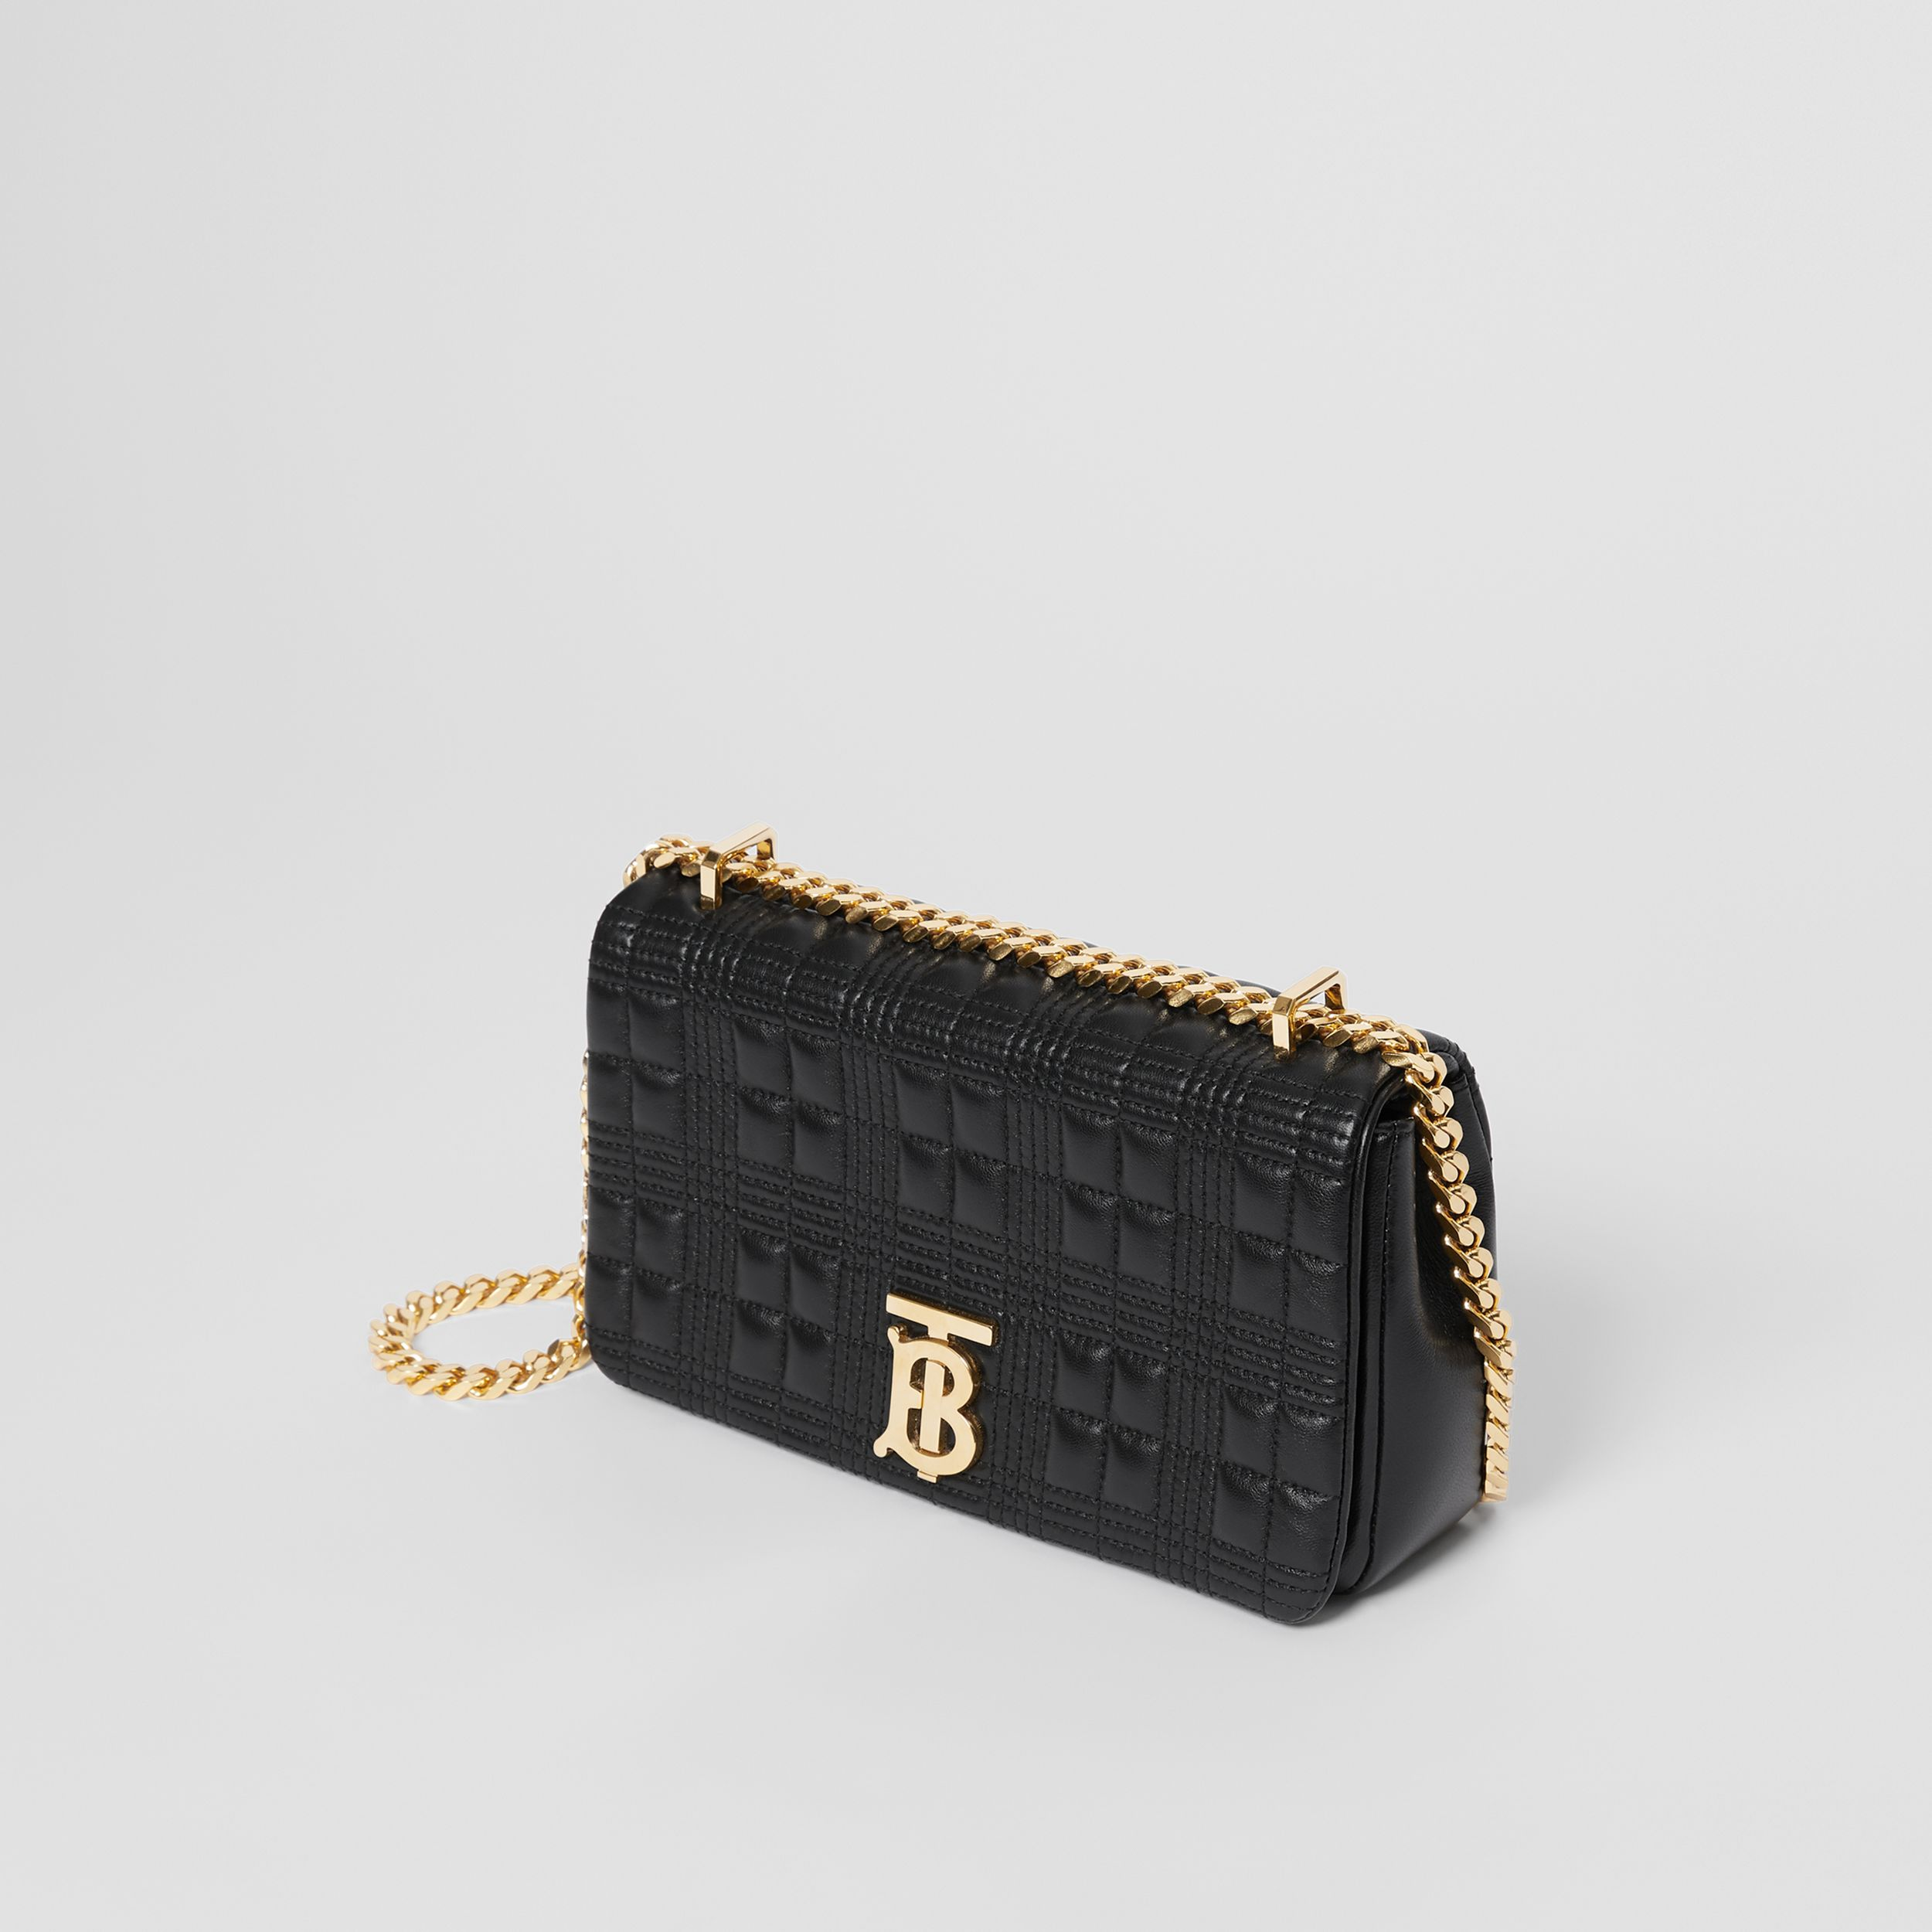 Small Quilted Lambskin Lola Bag in Black/light Gold - Women | Burberry United States - 4